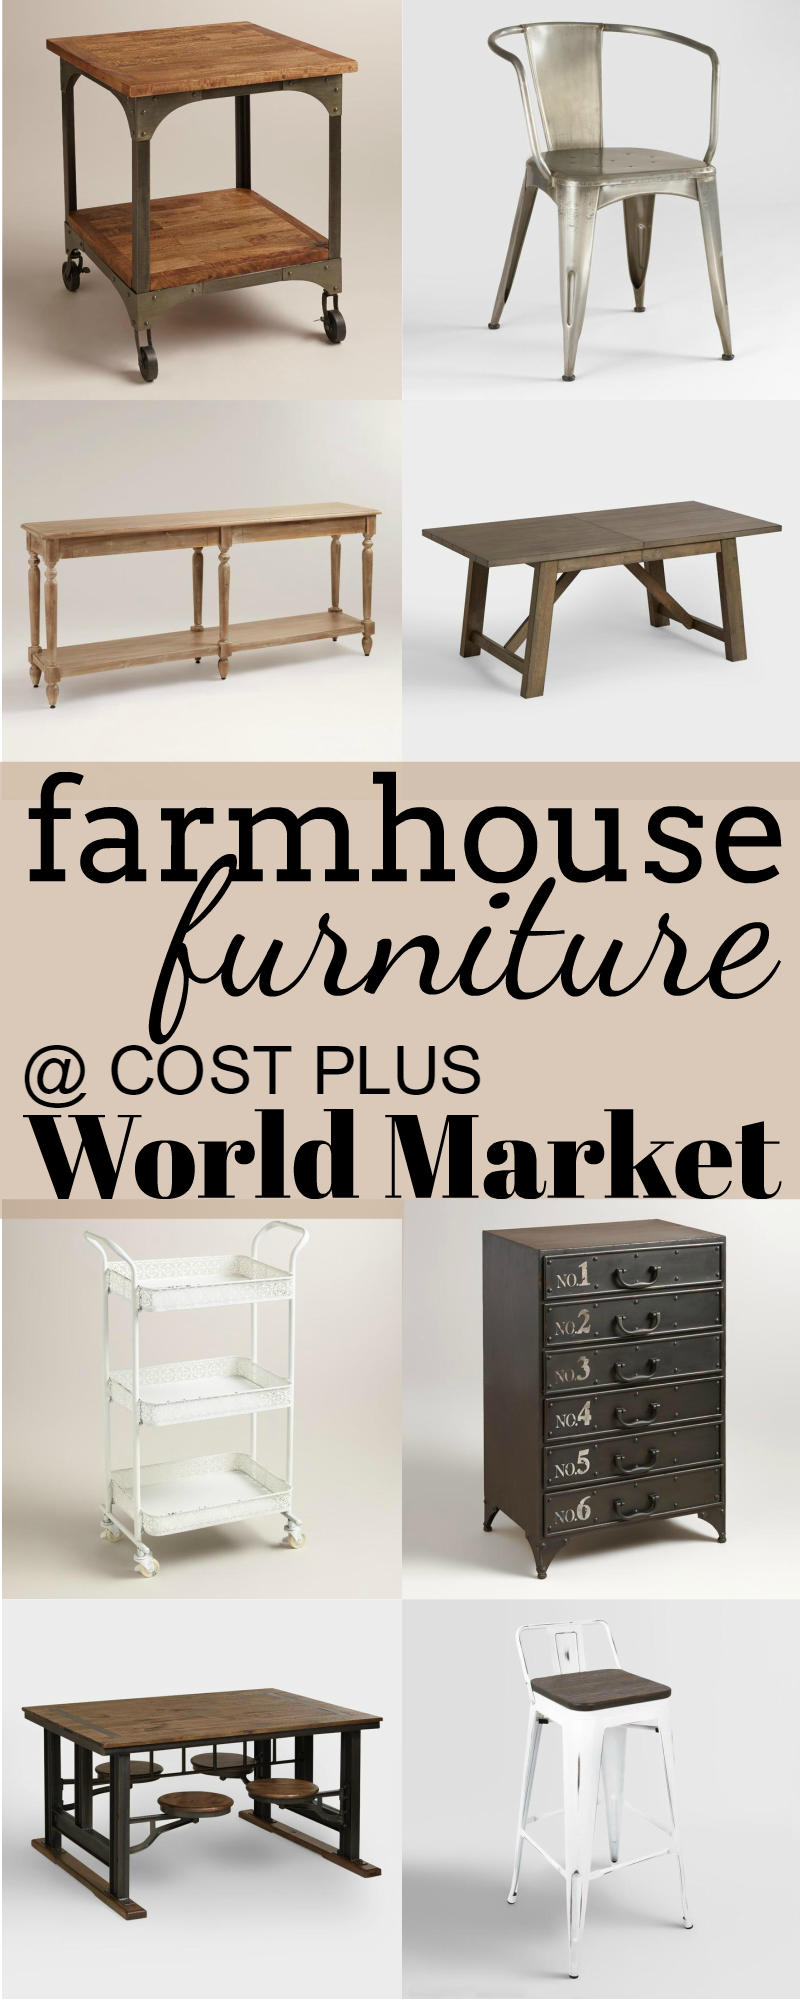 Farmhouse Furniture At Cost Plus World Market